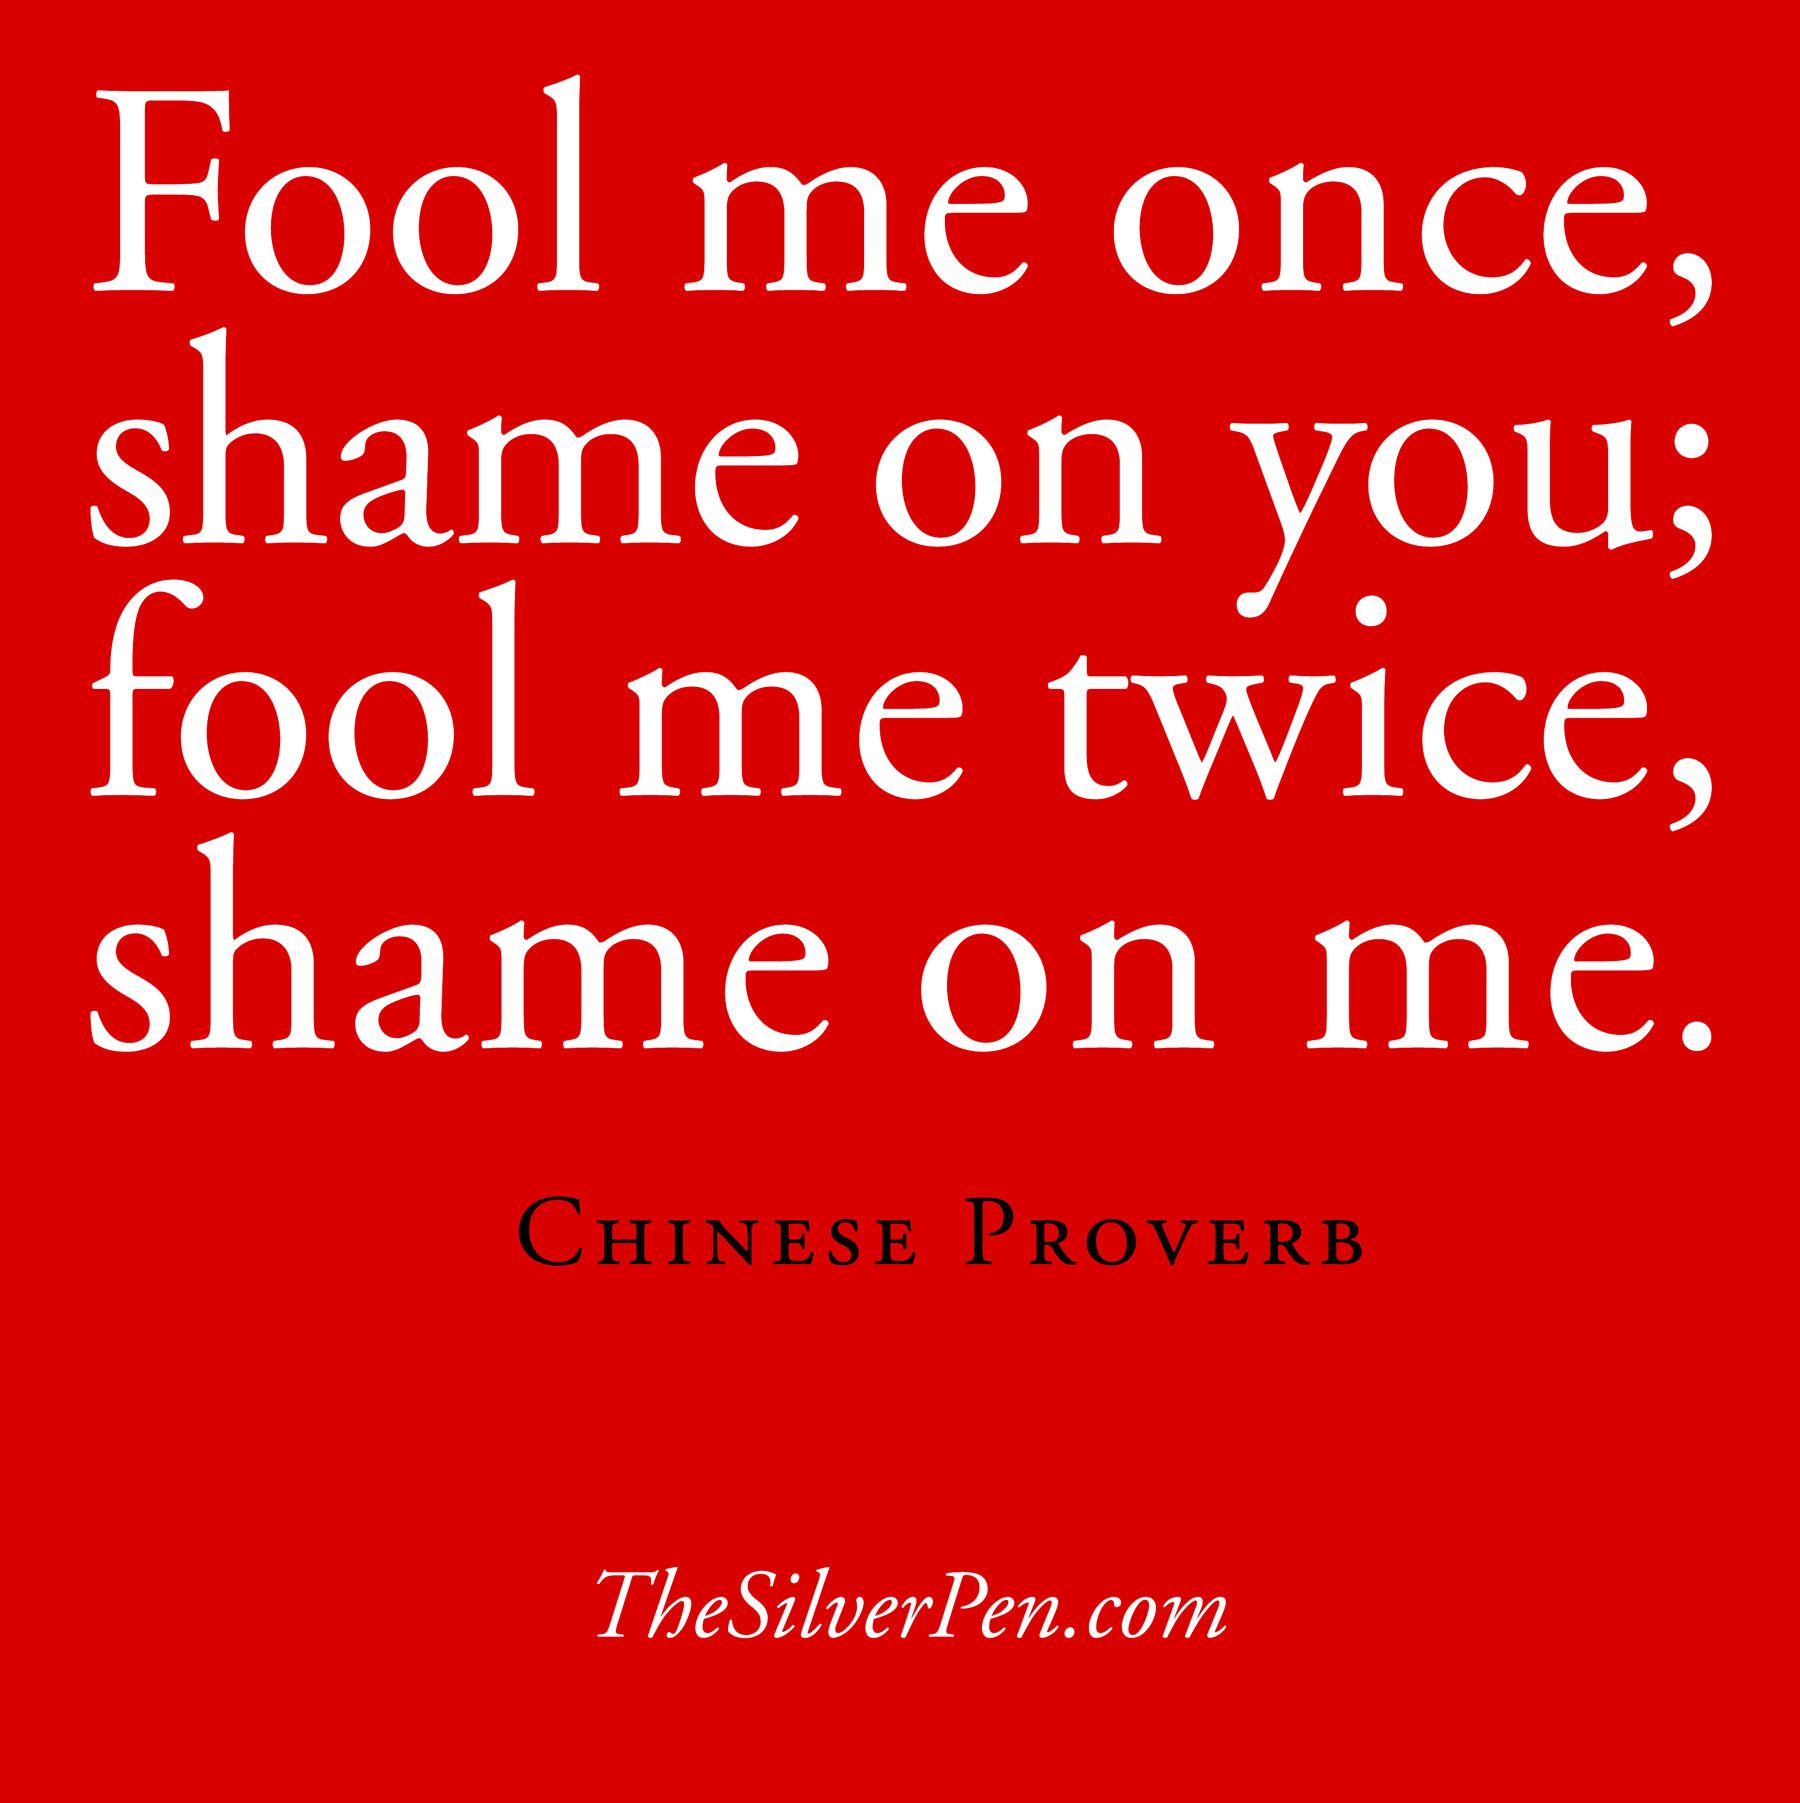 Spiritual Quote Of The Day April Fool's Day Pictures And Quotes  Ve Always Loved This Quote